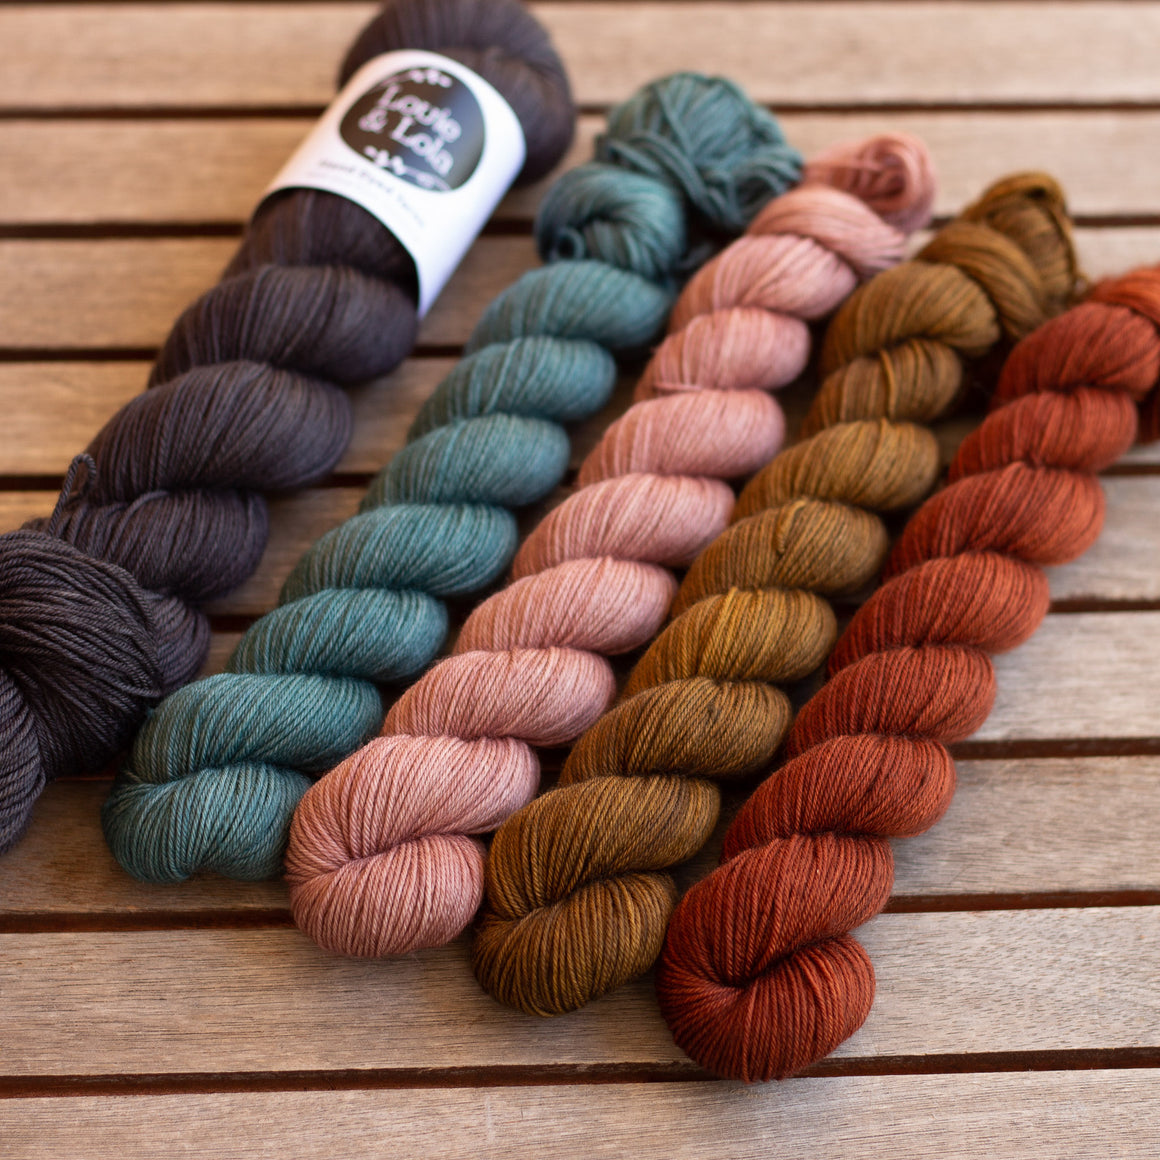 Recollect Cowl - Merino Fingering Yarn Kits Pre-Order